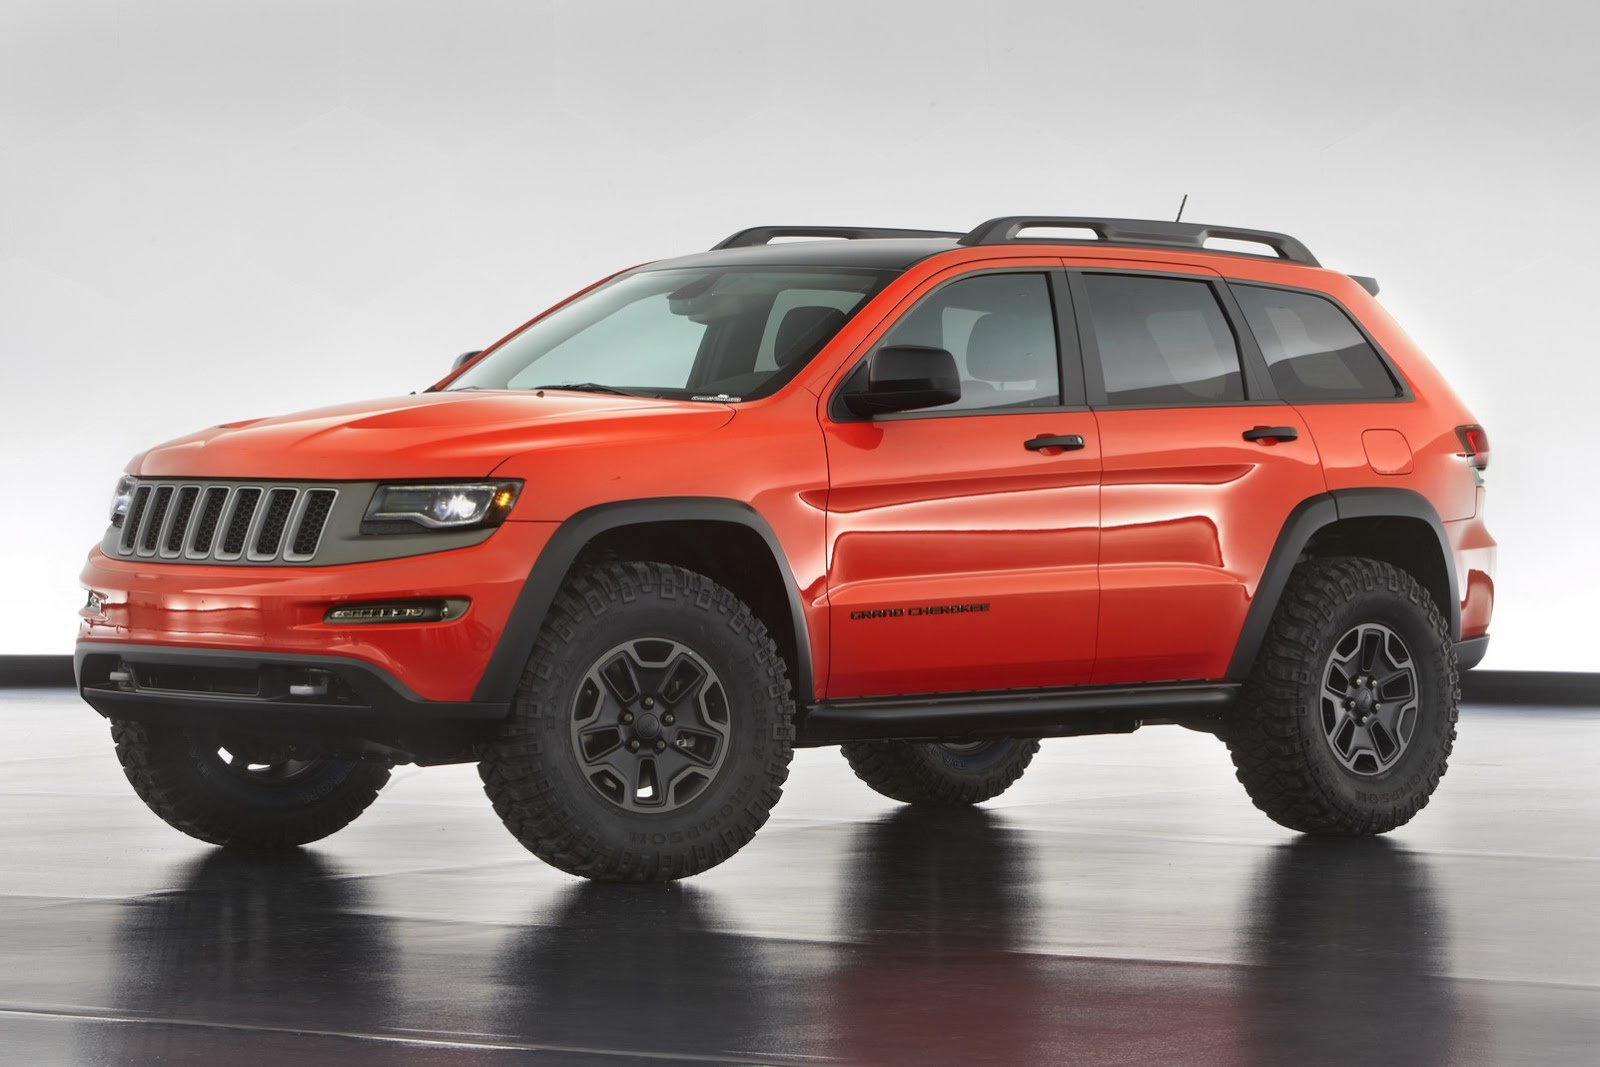 2014 jeep err 6 new models nyias preview the checkered flag. Black Bedroom Furniture Sets. Home Design Ideas